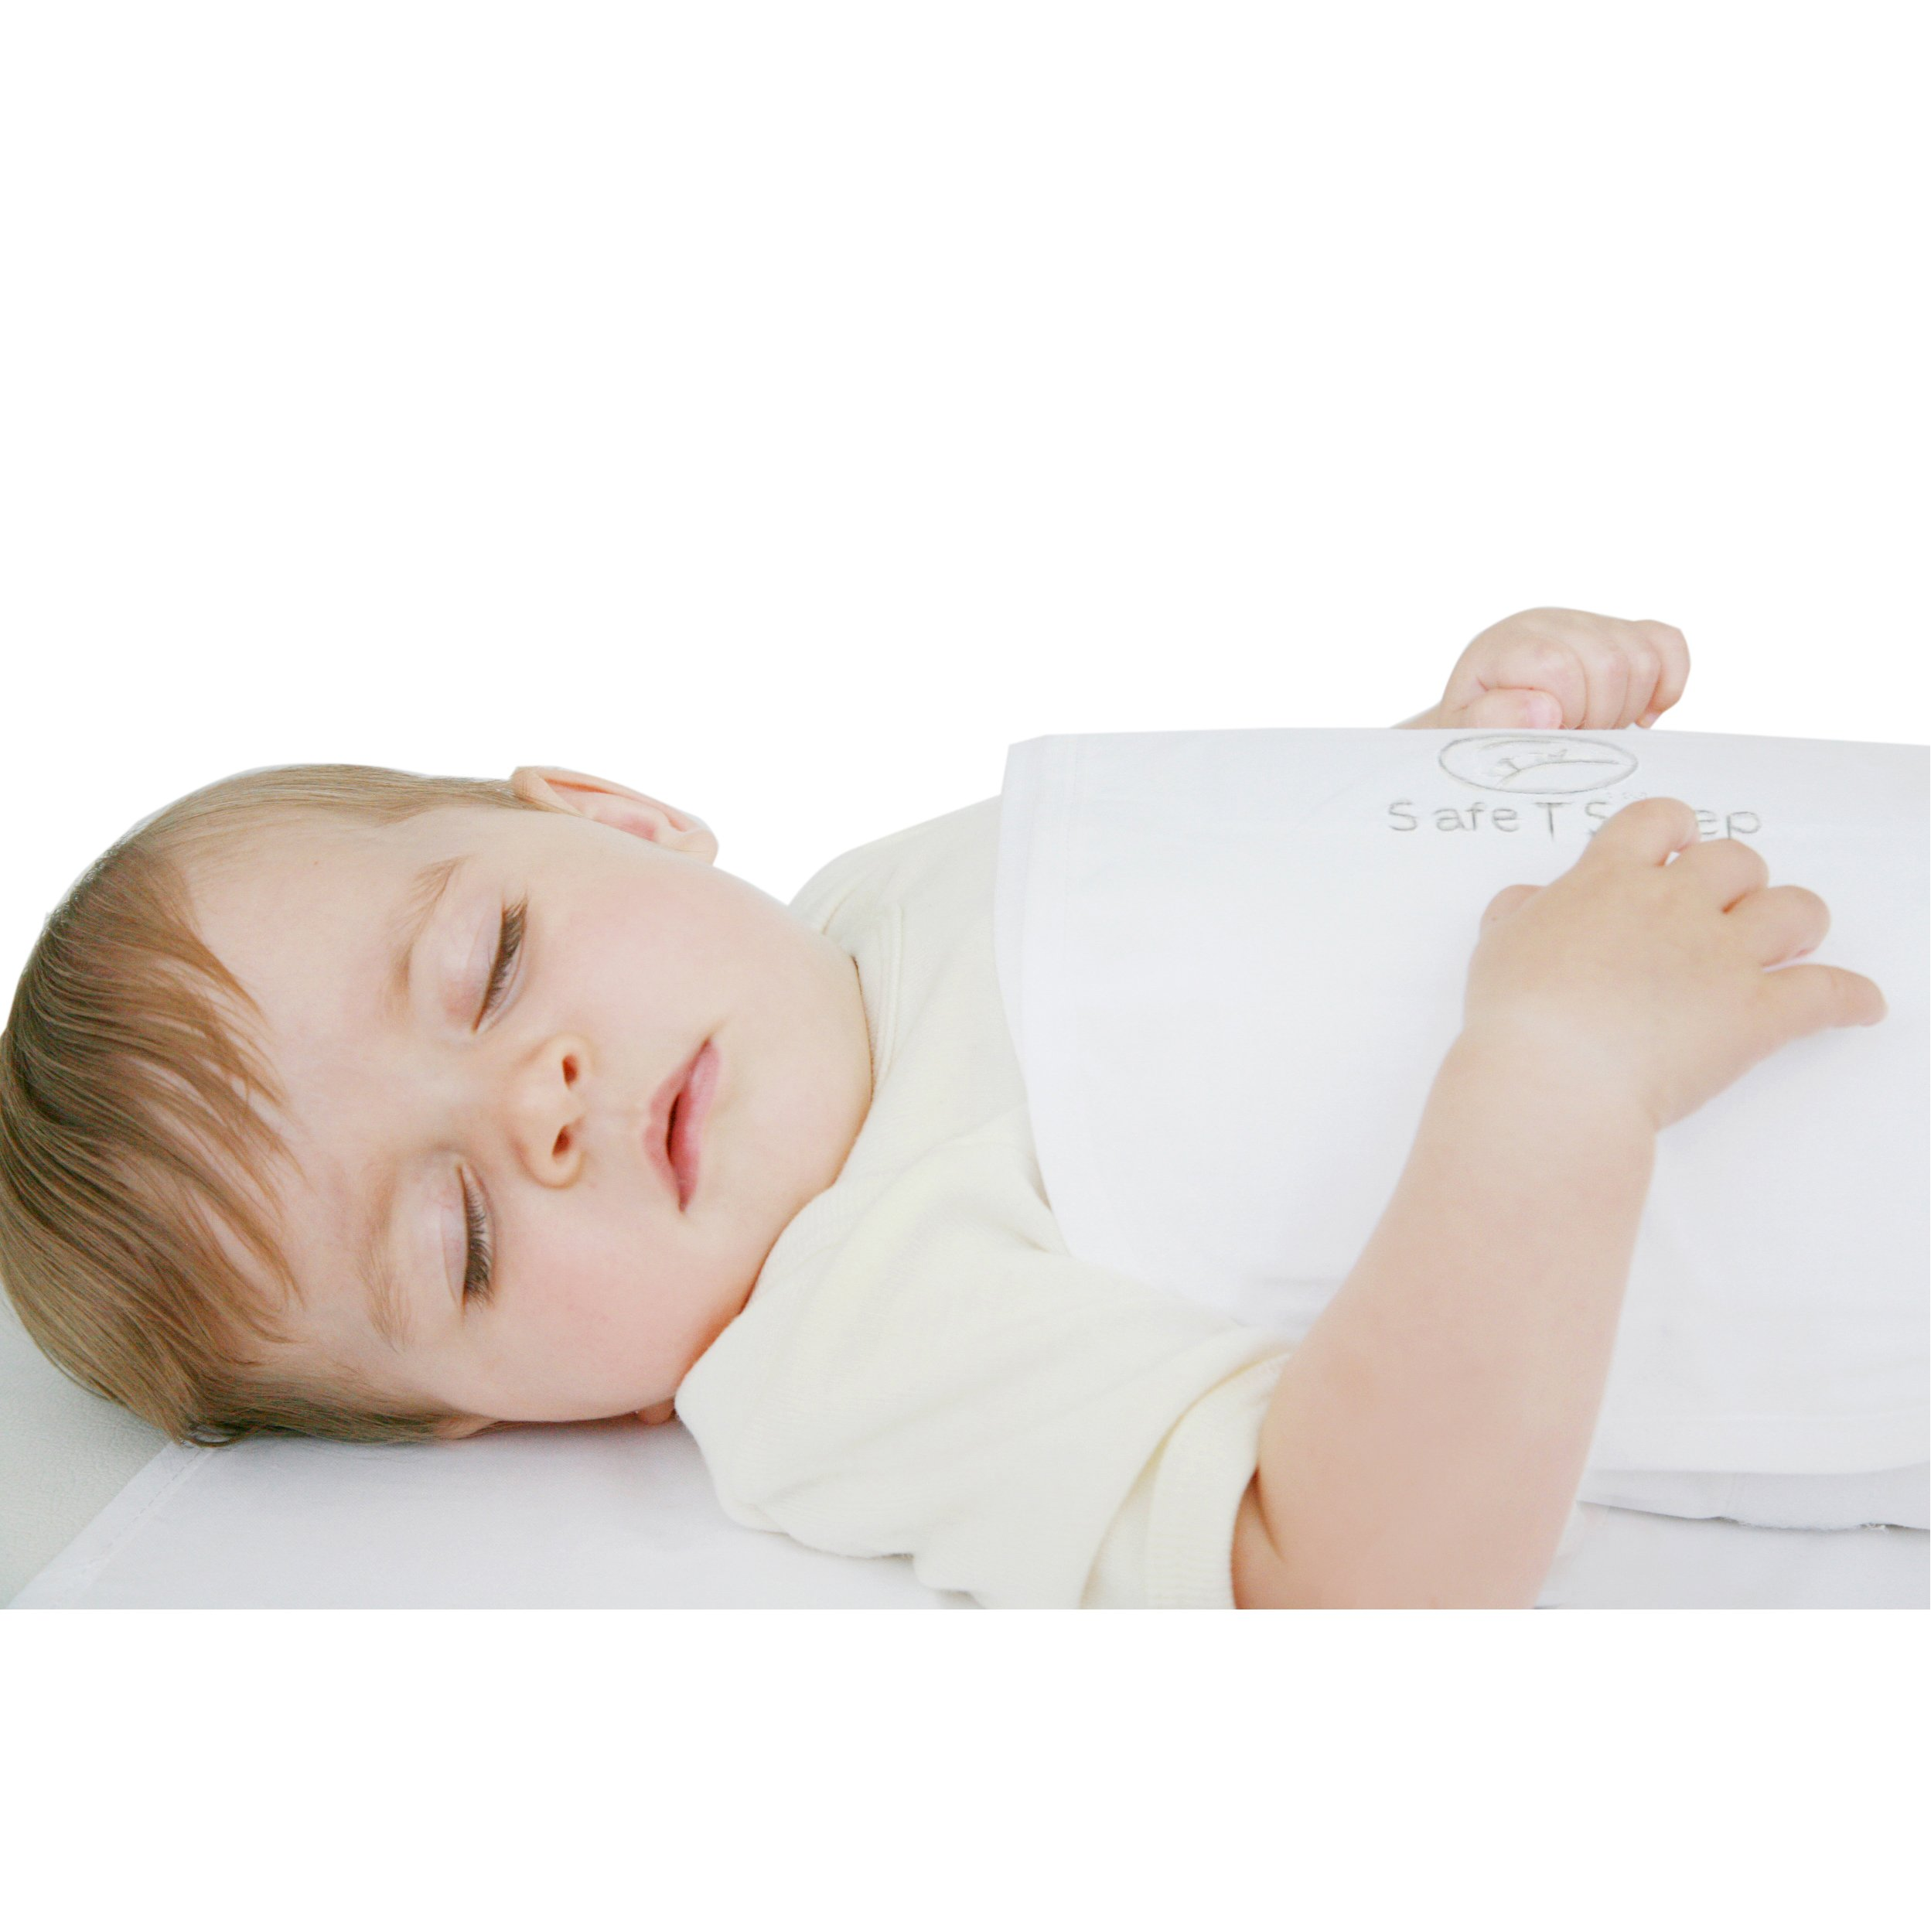 Safe T Sleep Sleepwrap Babywrap Swaddle: 'CLASSIC' Model Fits: Bassinets, Cribs/Cots and Standard Single Beds, for Babies Aged Newborn to 2 Years Plus